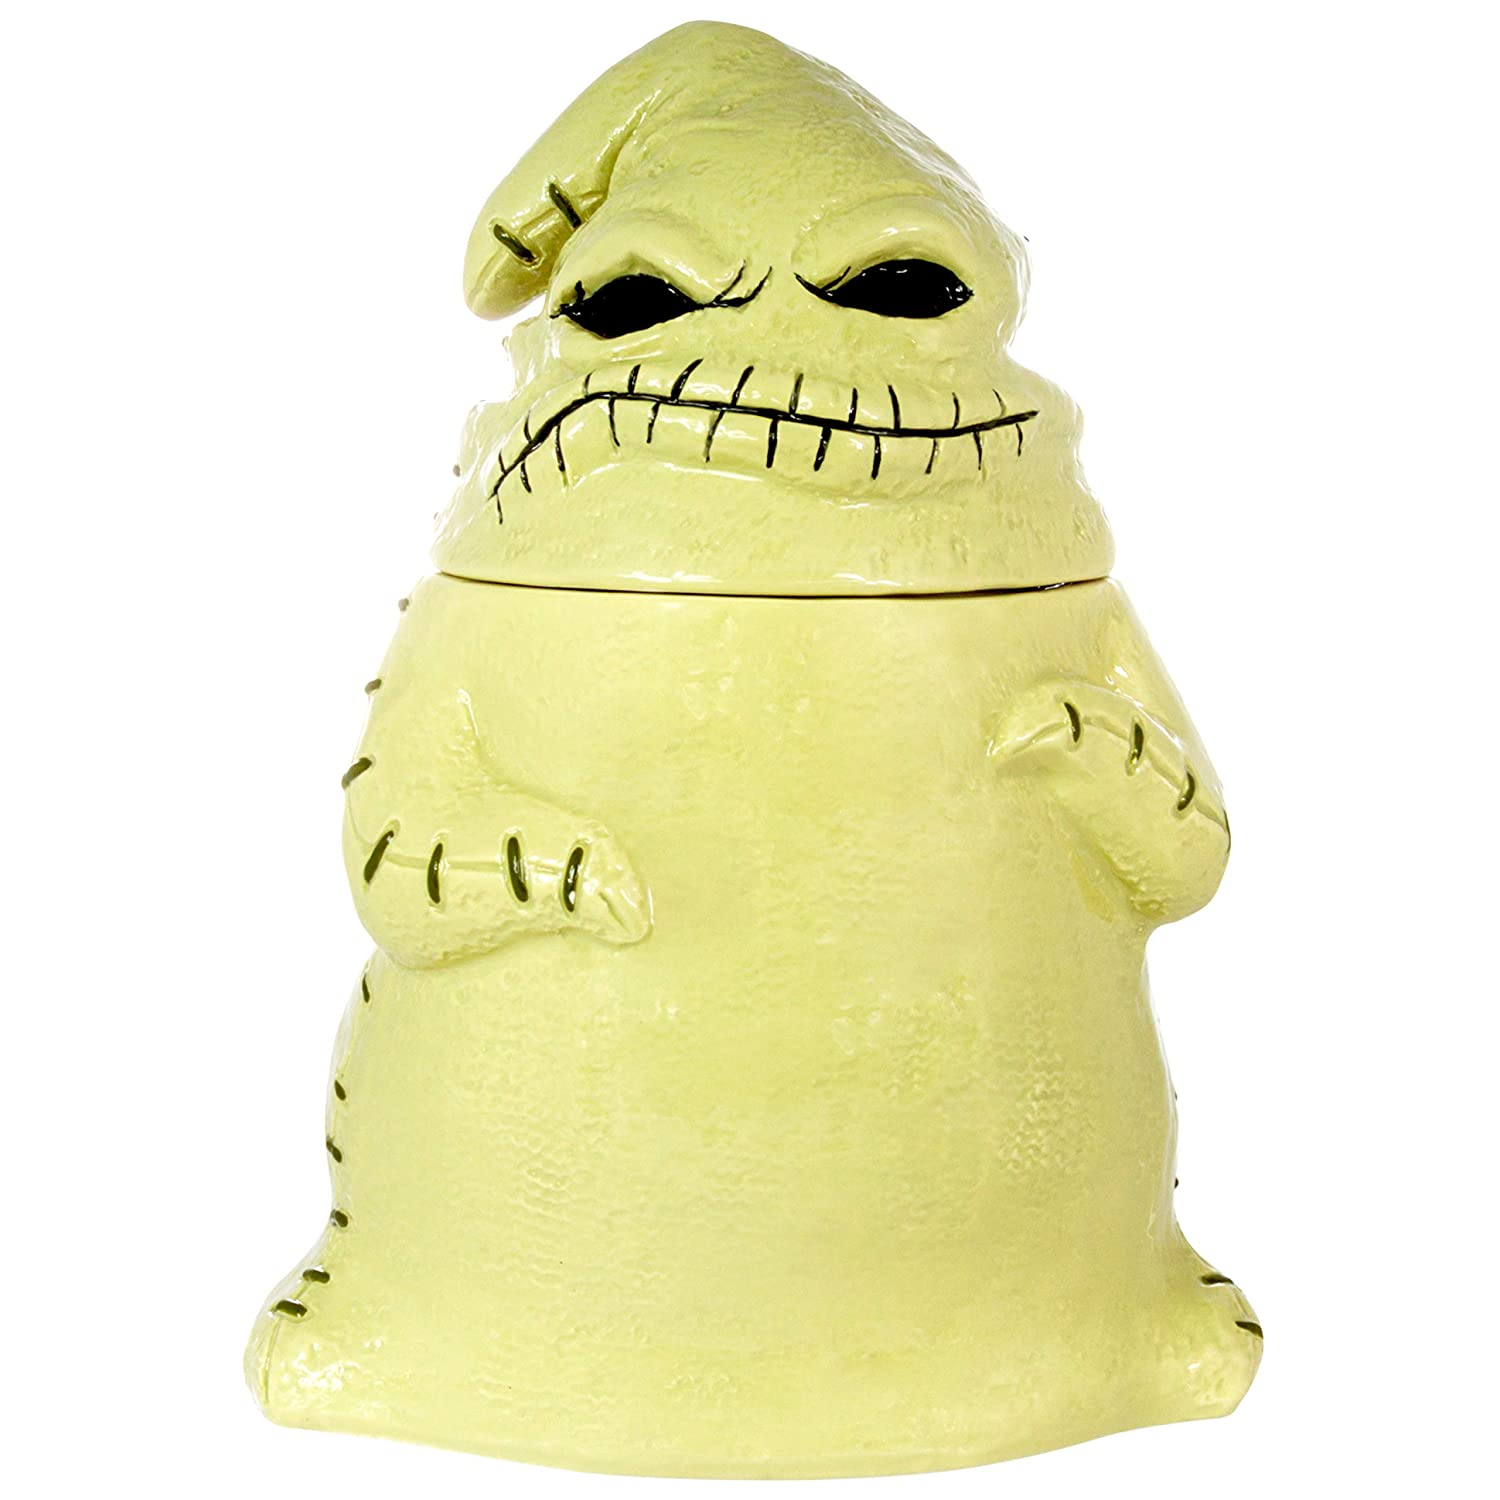 Seven20 Tim Burton's The Nightmare Before Christmas Ceramic Oogie Boogie Figural Cookie Jar